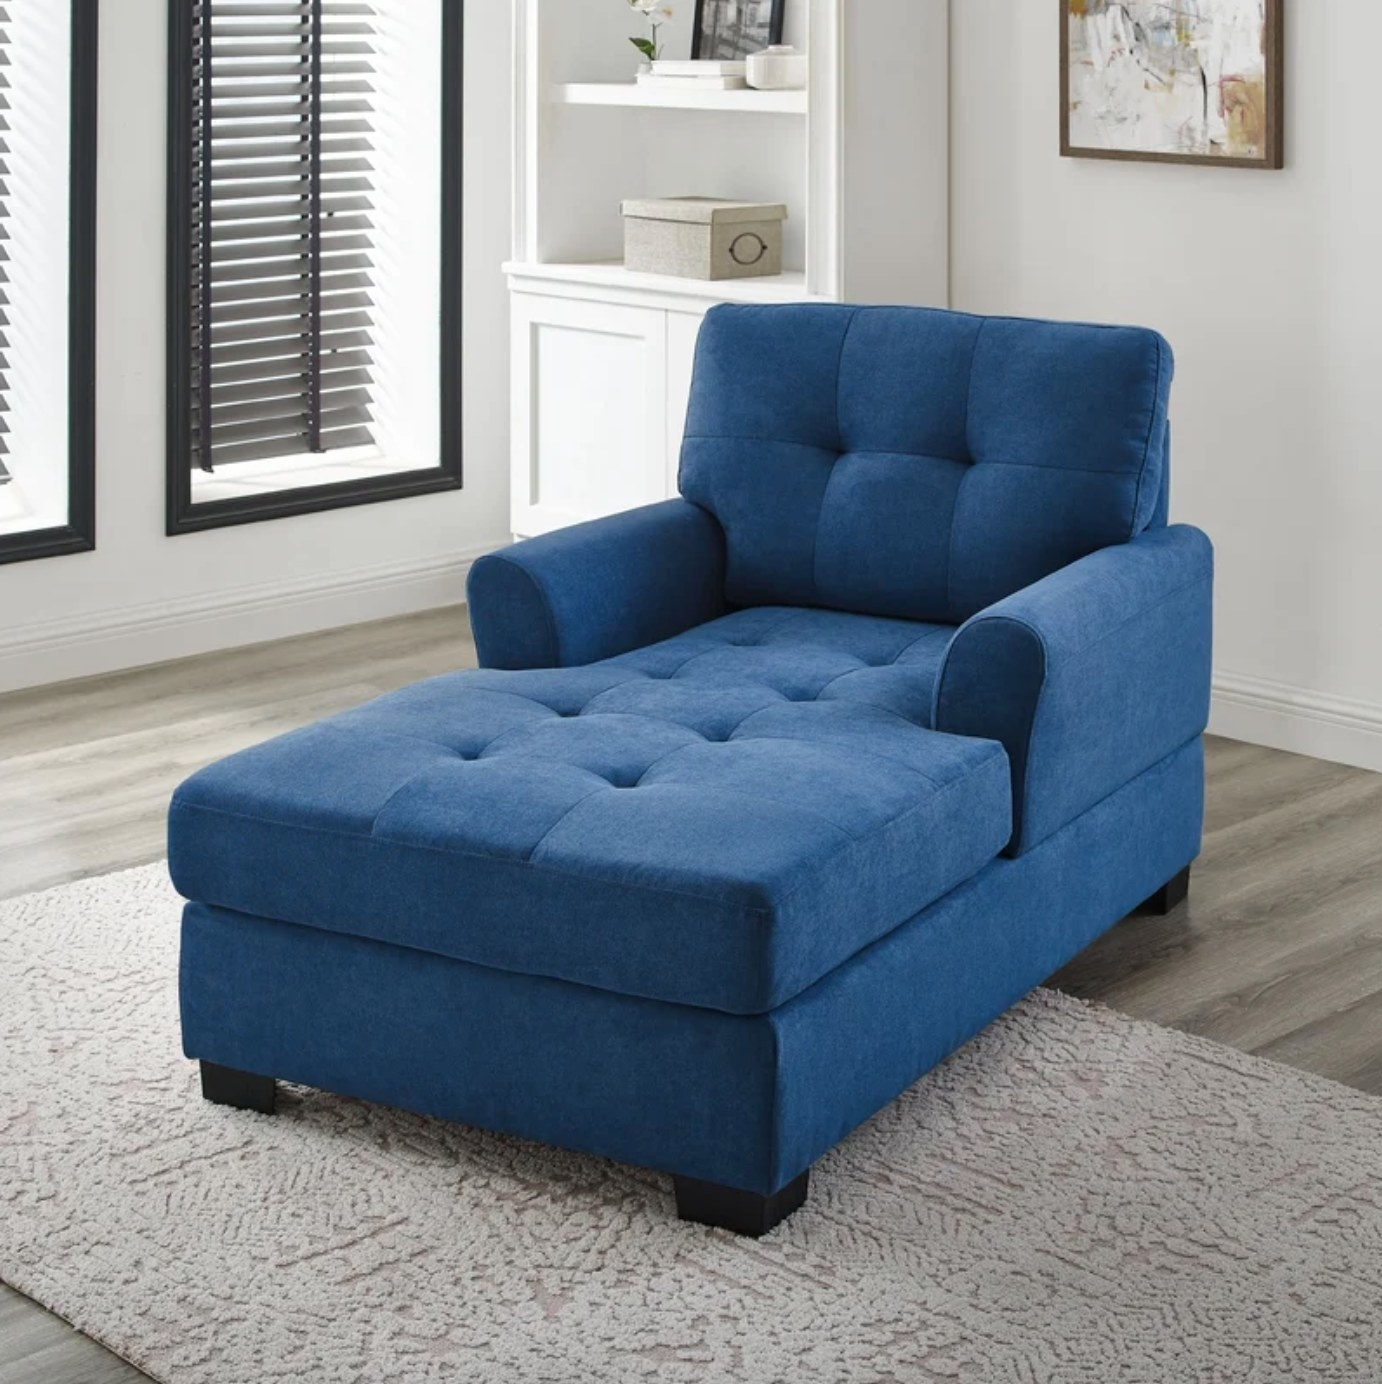 The chaise lounge in blue in a neutral-colored room